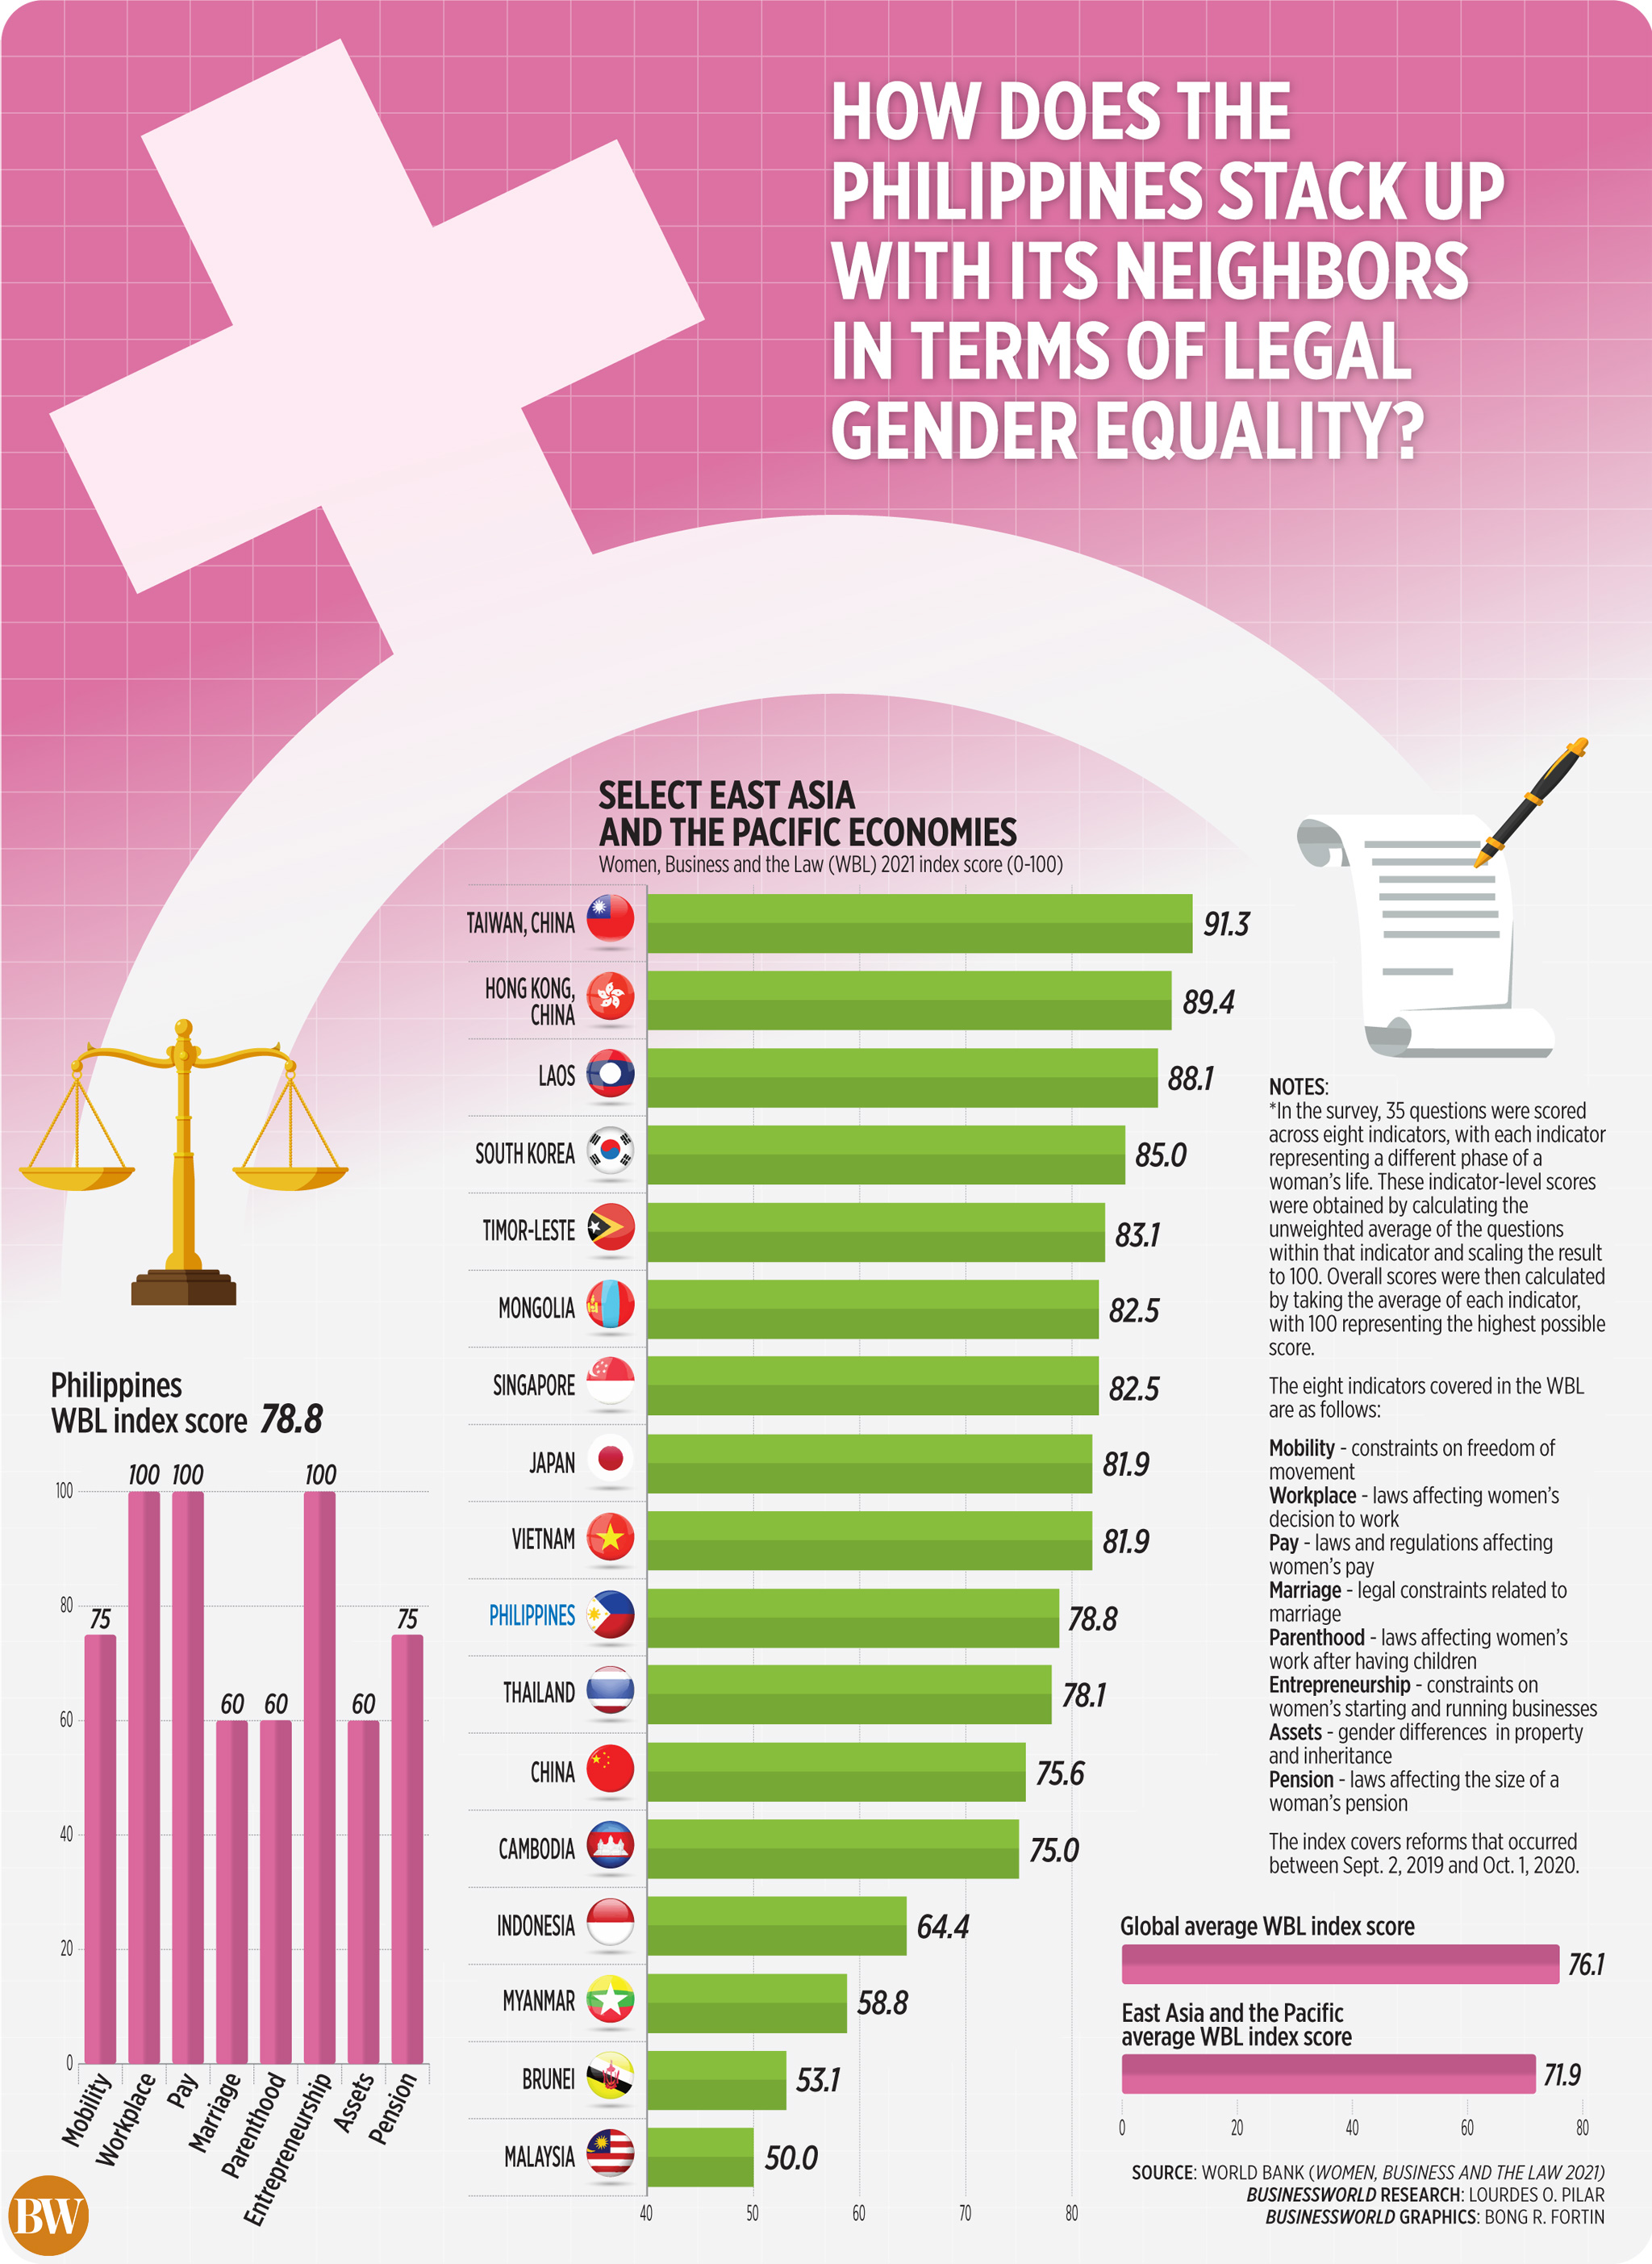 How does the Philippines stack up with its neighbors in terms of legal gender equality?